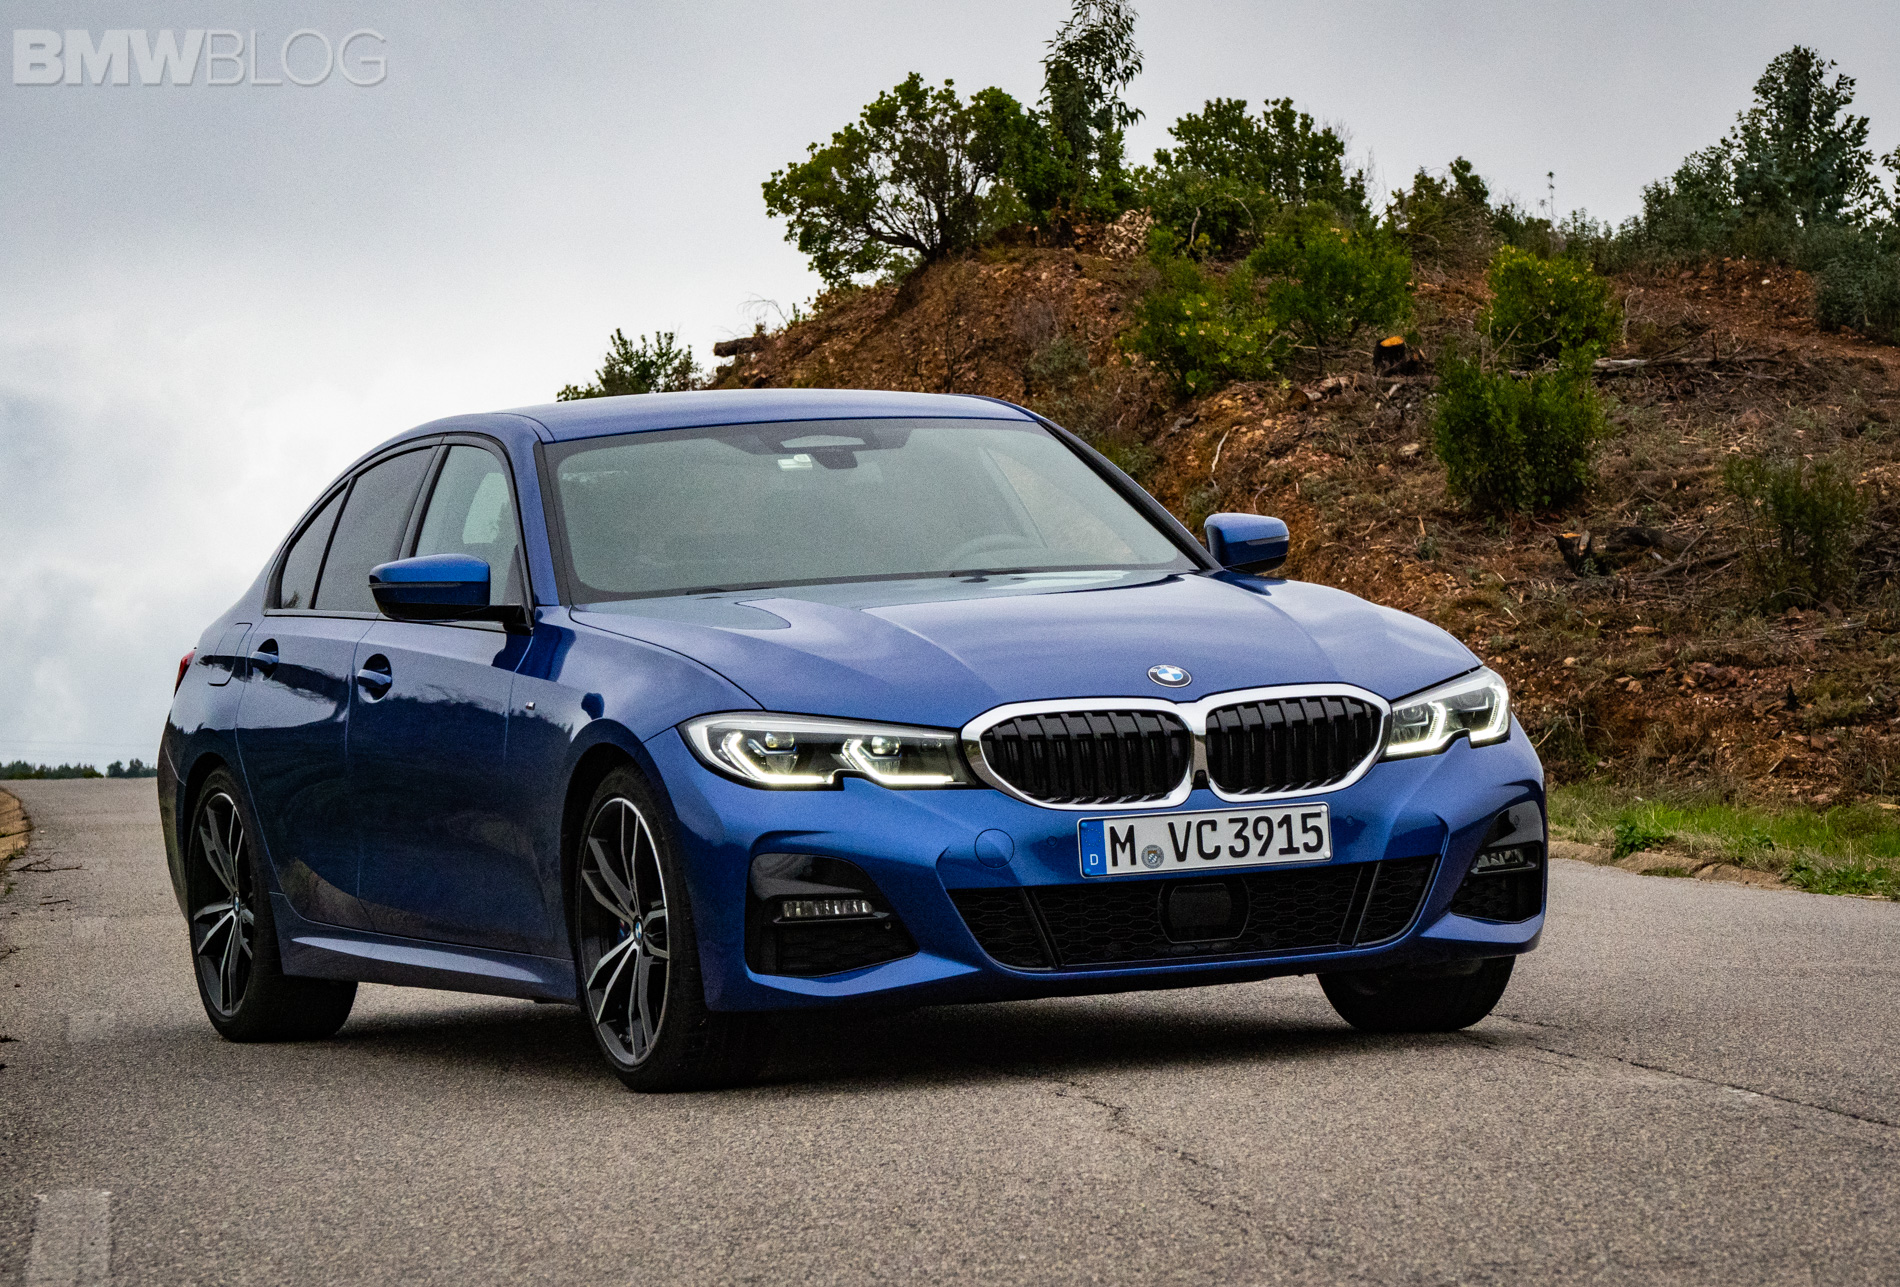 MotorWeek Calls New BMW 3 Series a 'Back to Roots' Model